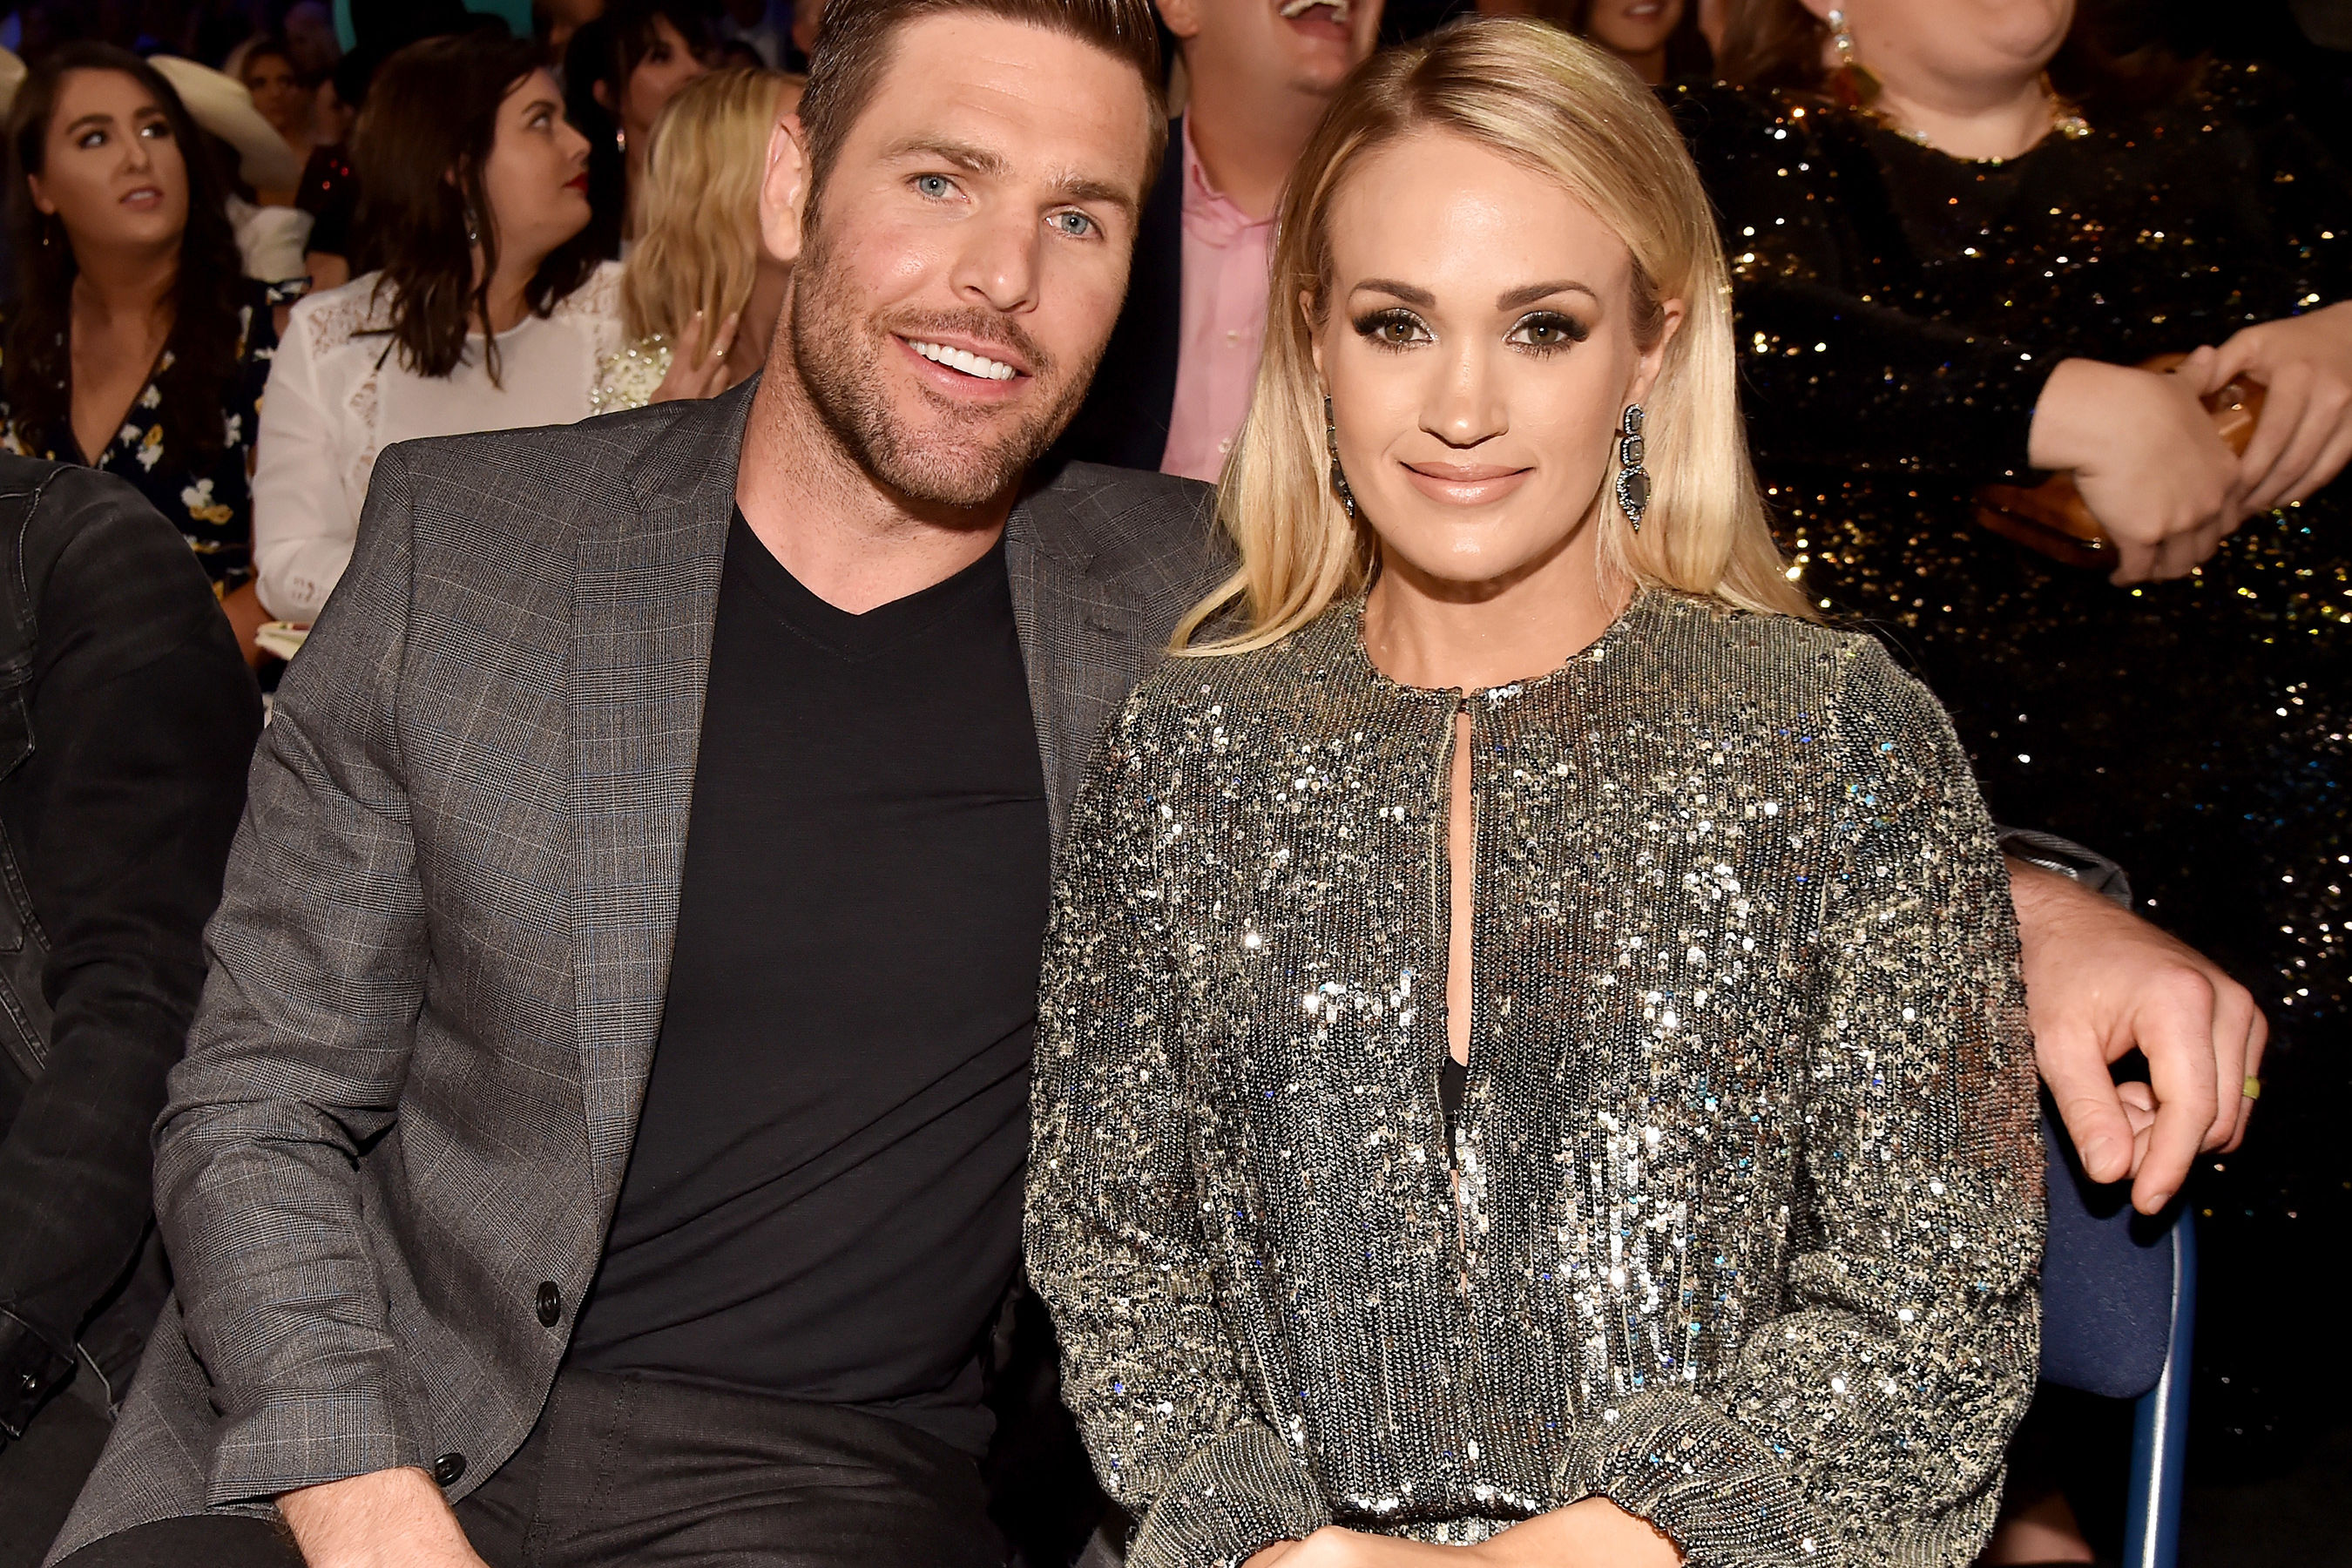 Carrie Underwood's Husband Mike Fisher Praises Her for 'Remaining Humble' in All Her Success